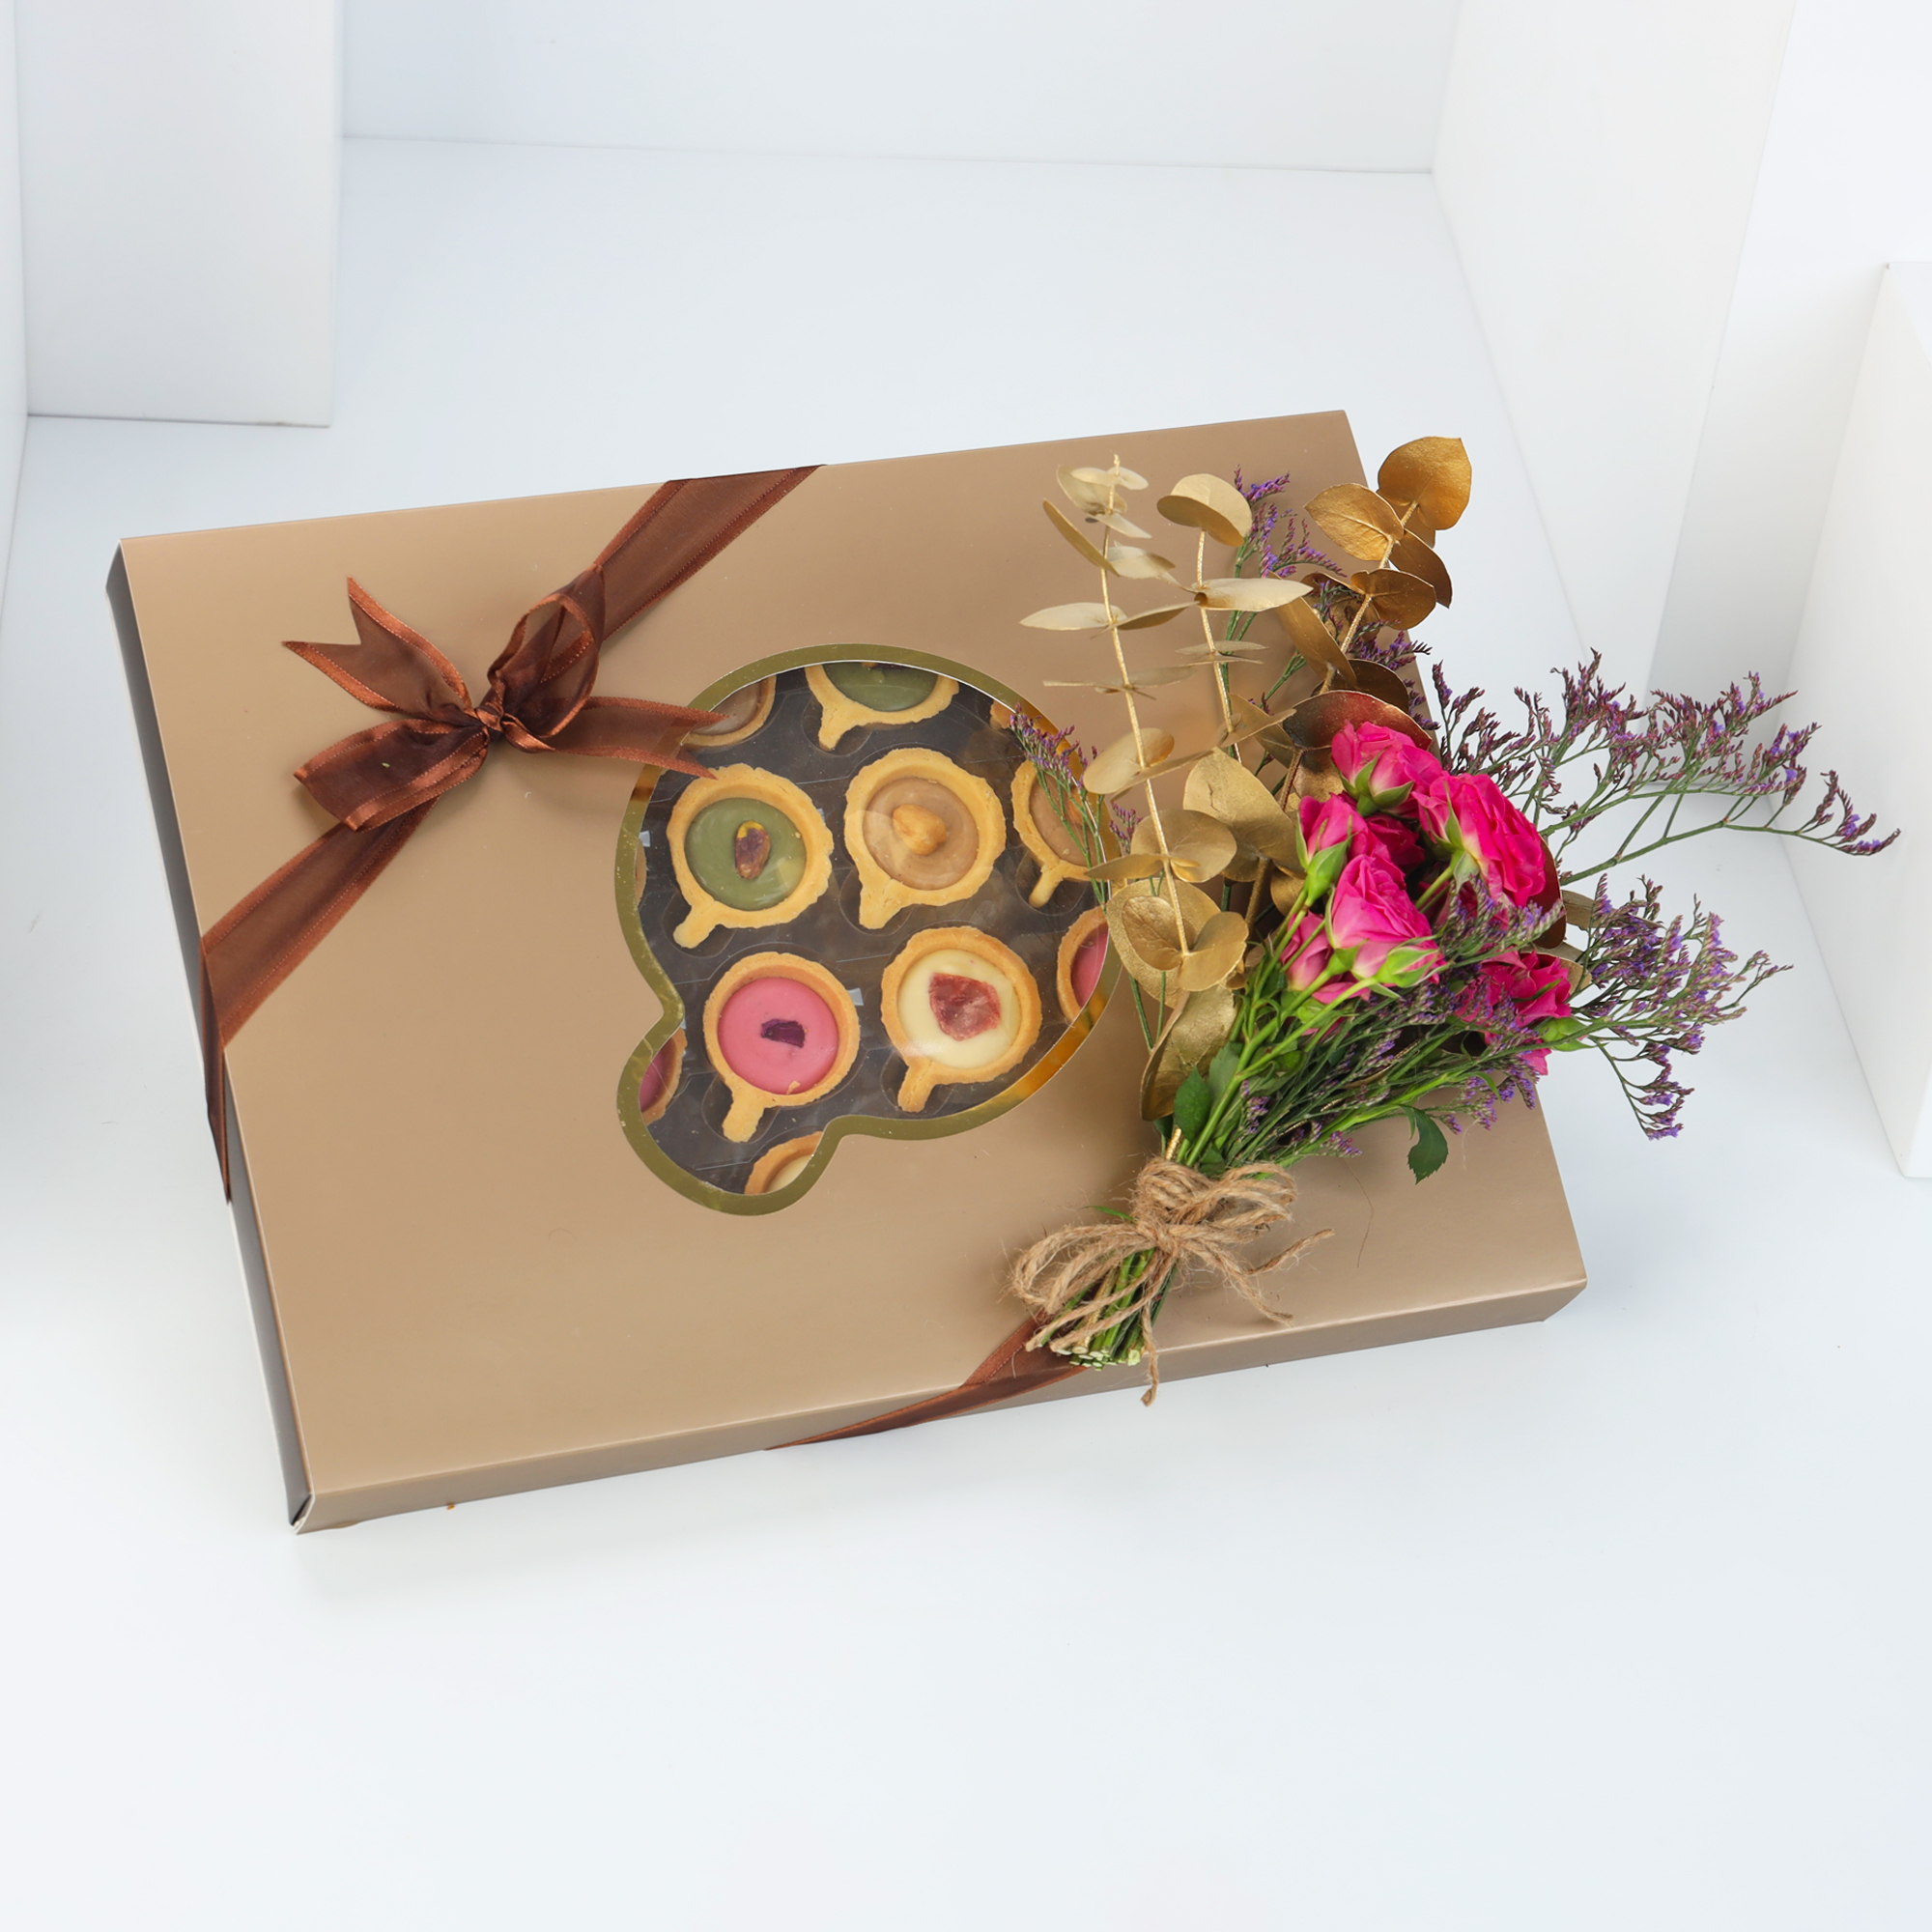 Janahi Sweet's Tart Box